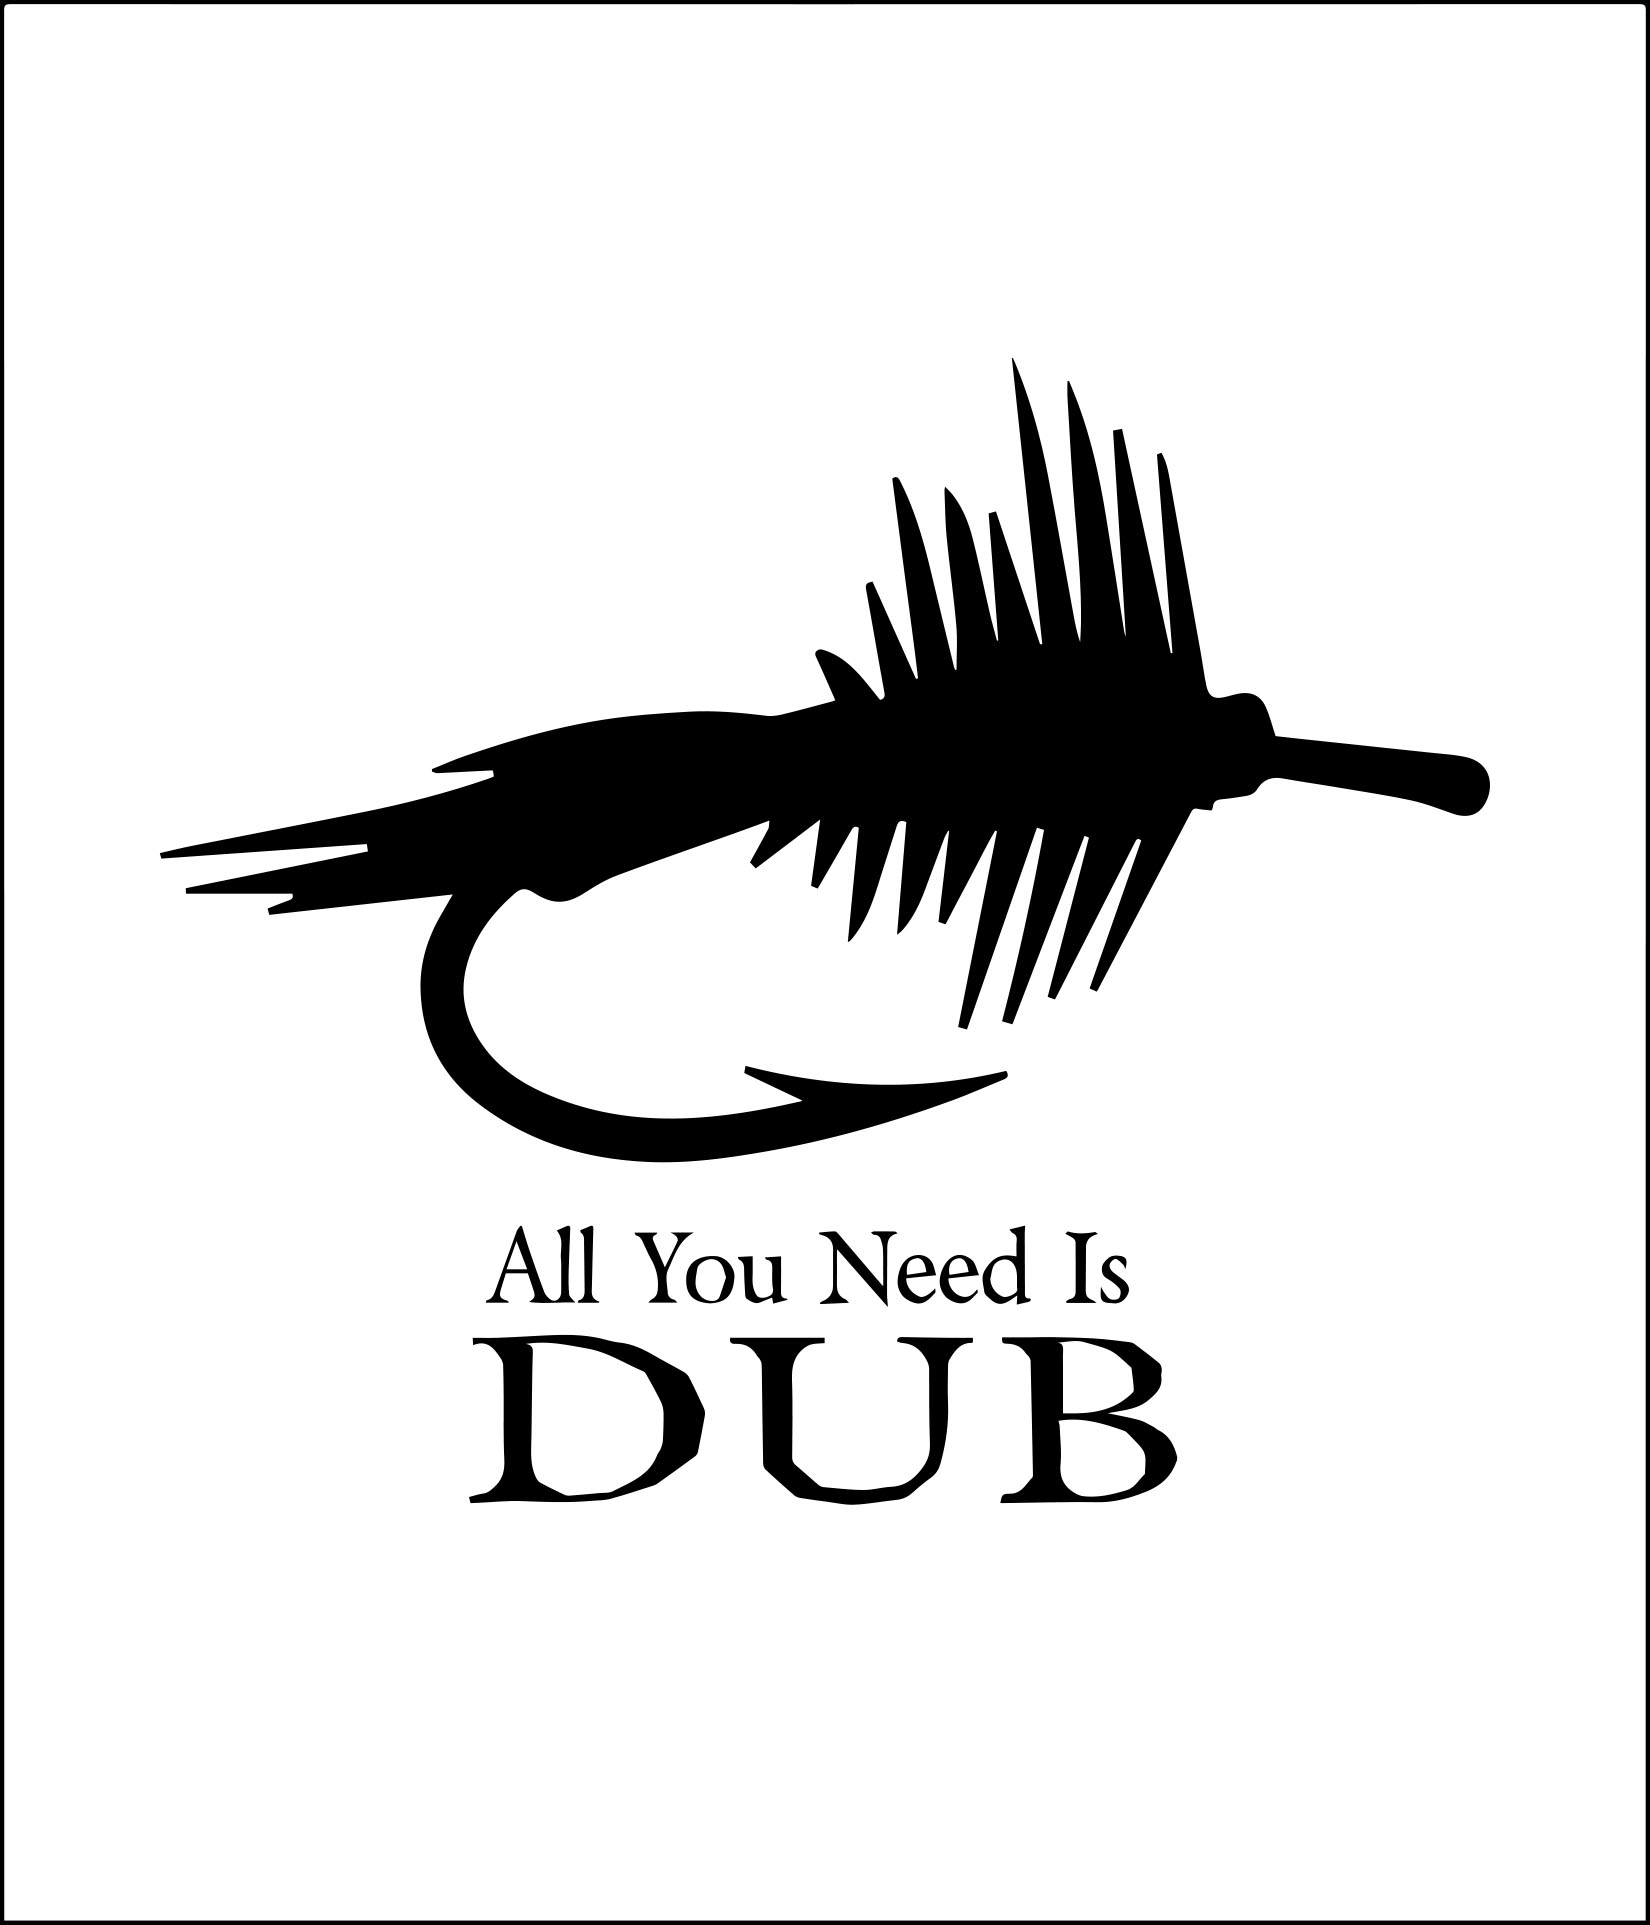 all you need is dub-1.jpg